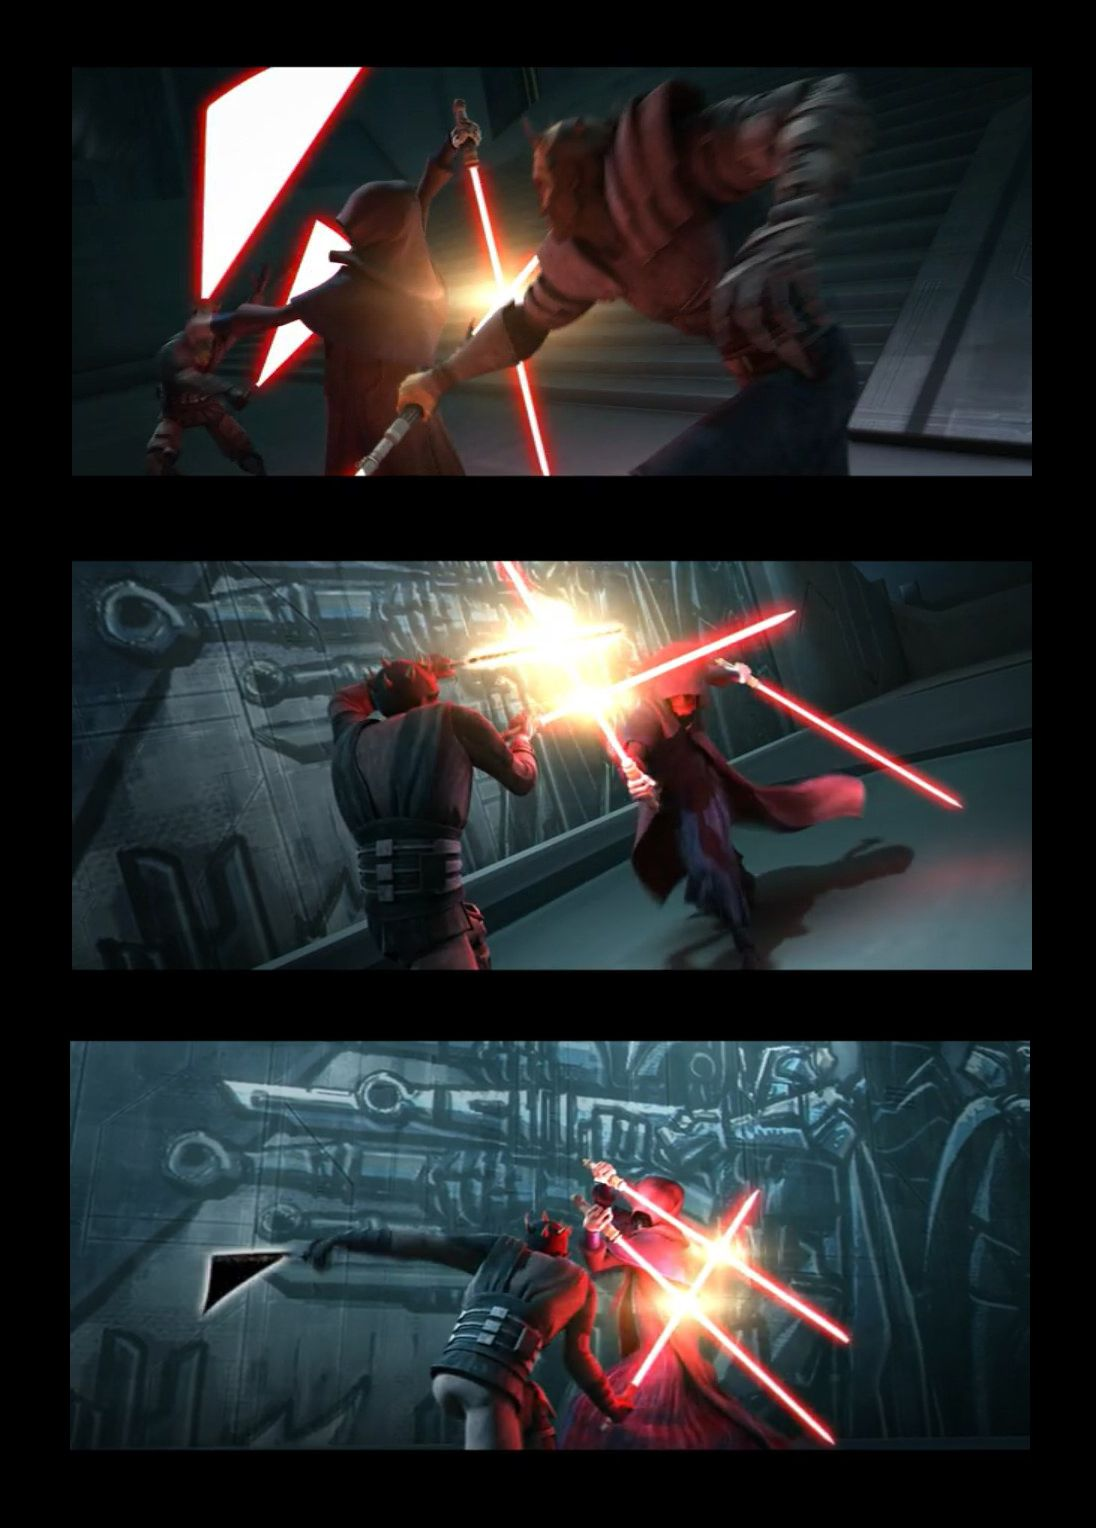 Darth Sidious Vs Maul Savage Was The Best Fight In TCW Series